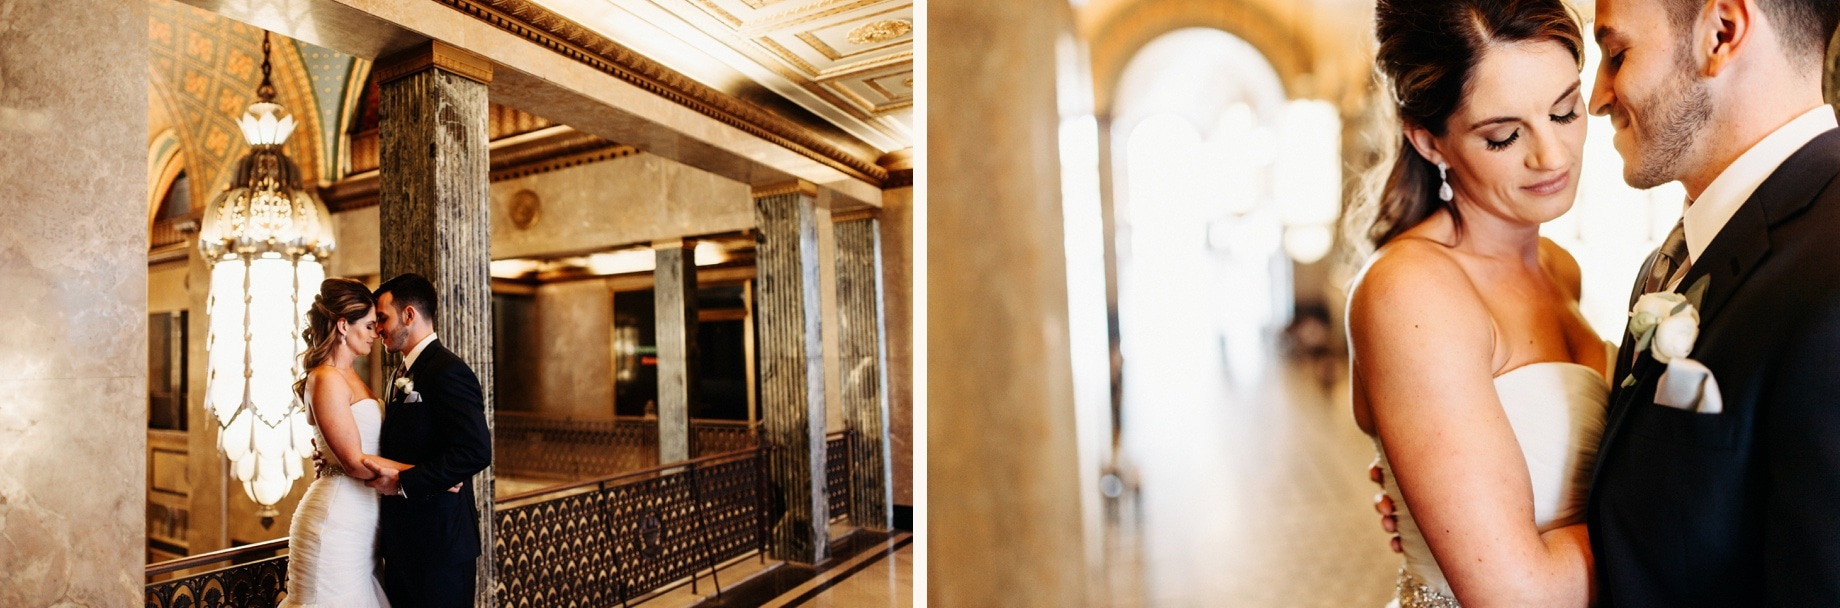 bride and groom portraits in the fisher building by detroit wedding photographer heather jowett